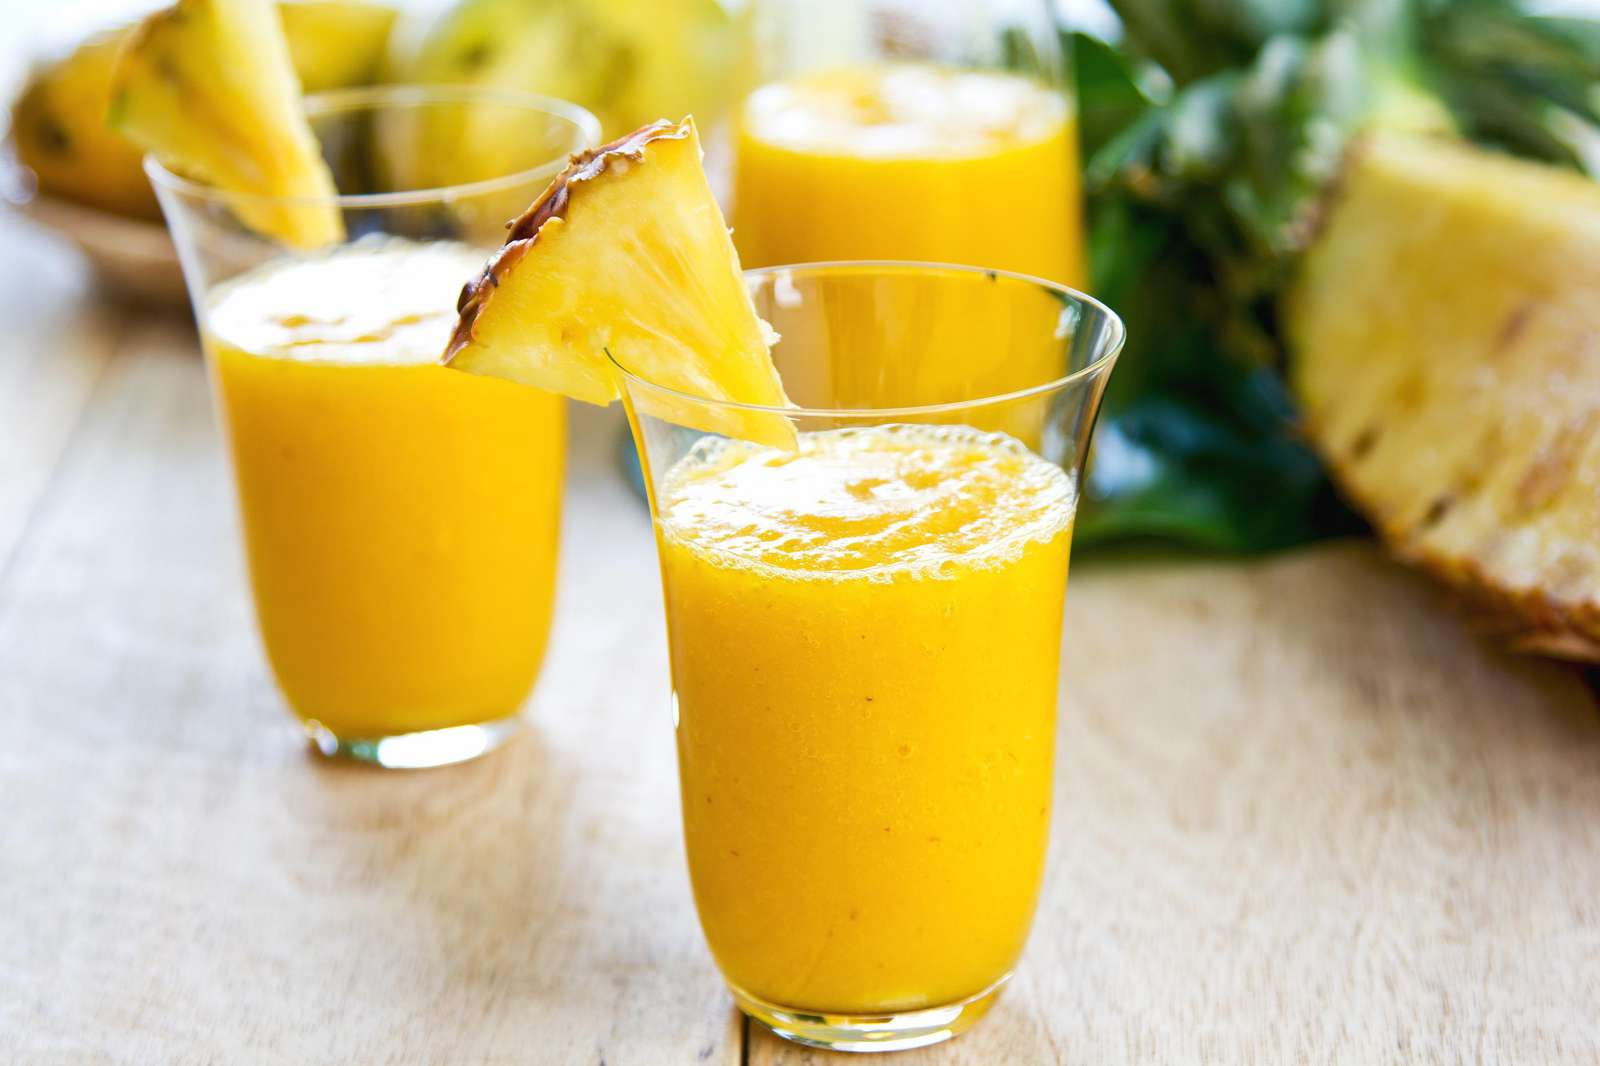 Make your own smoothies (or pina coladas) - Its why we have a blender in every apartment